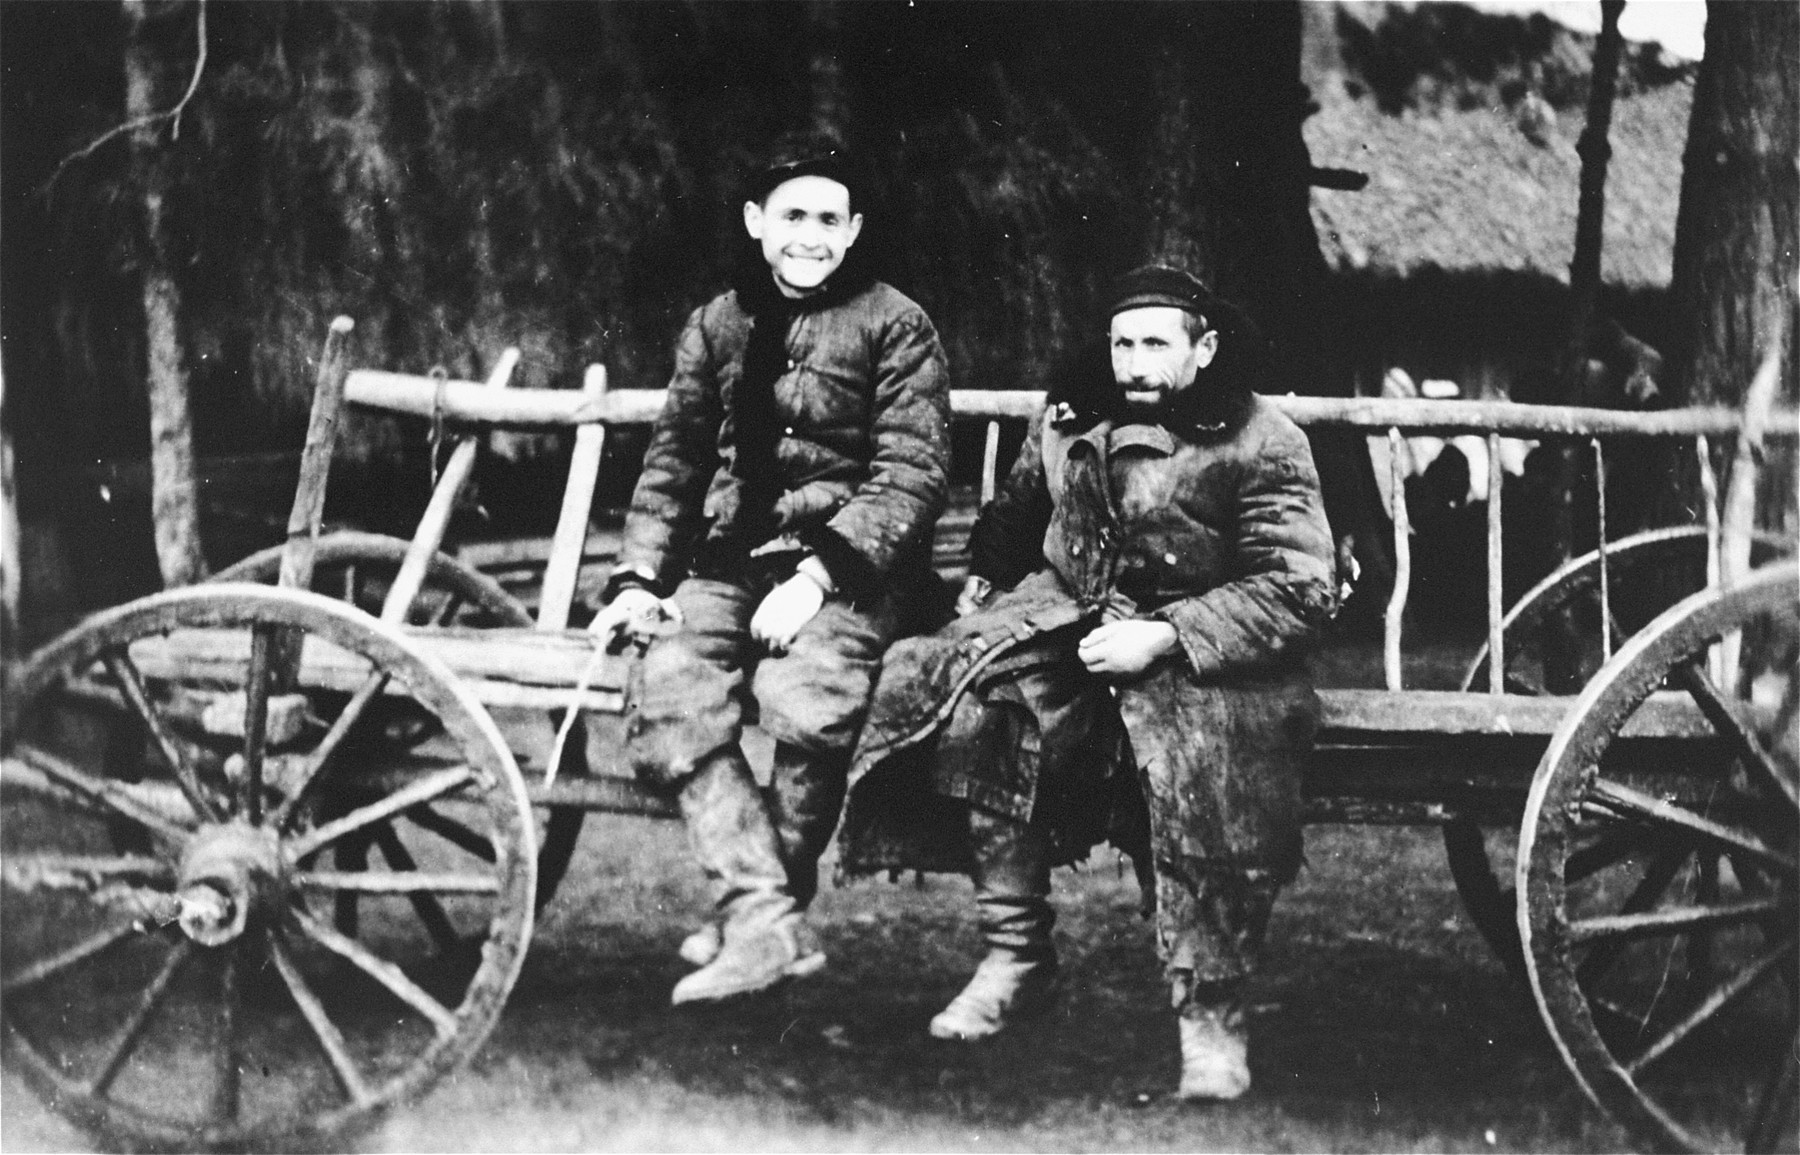 A father and son sit on a wagon in the Wisznice ghetto.